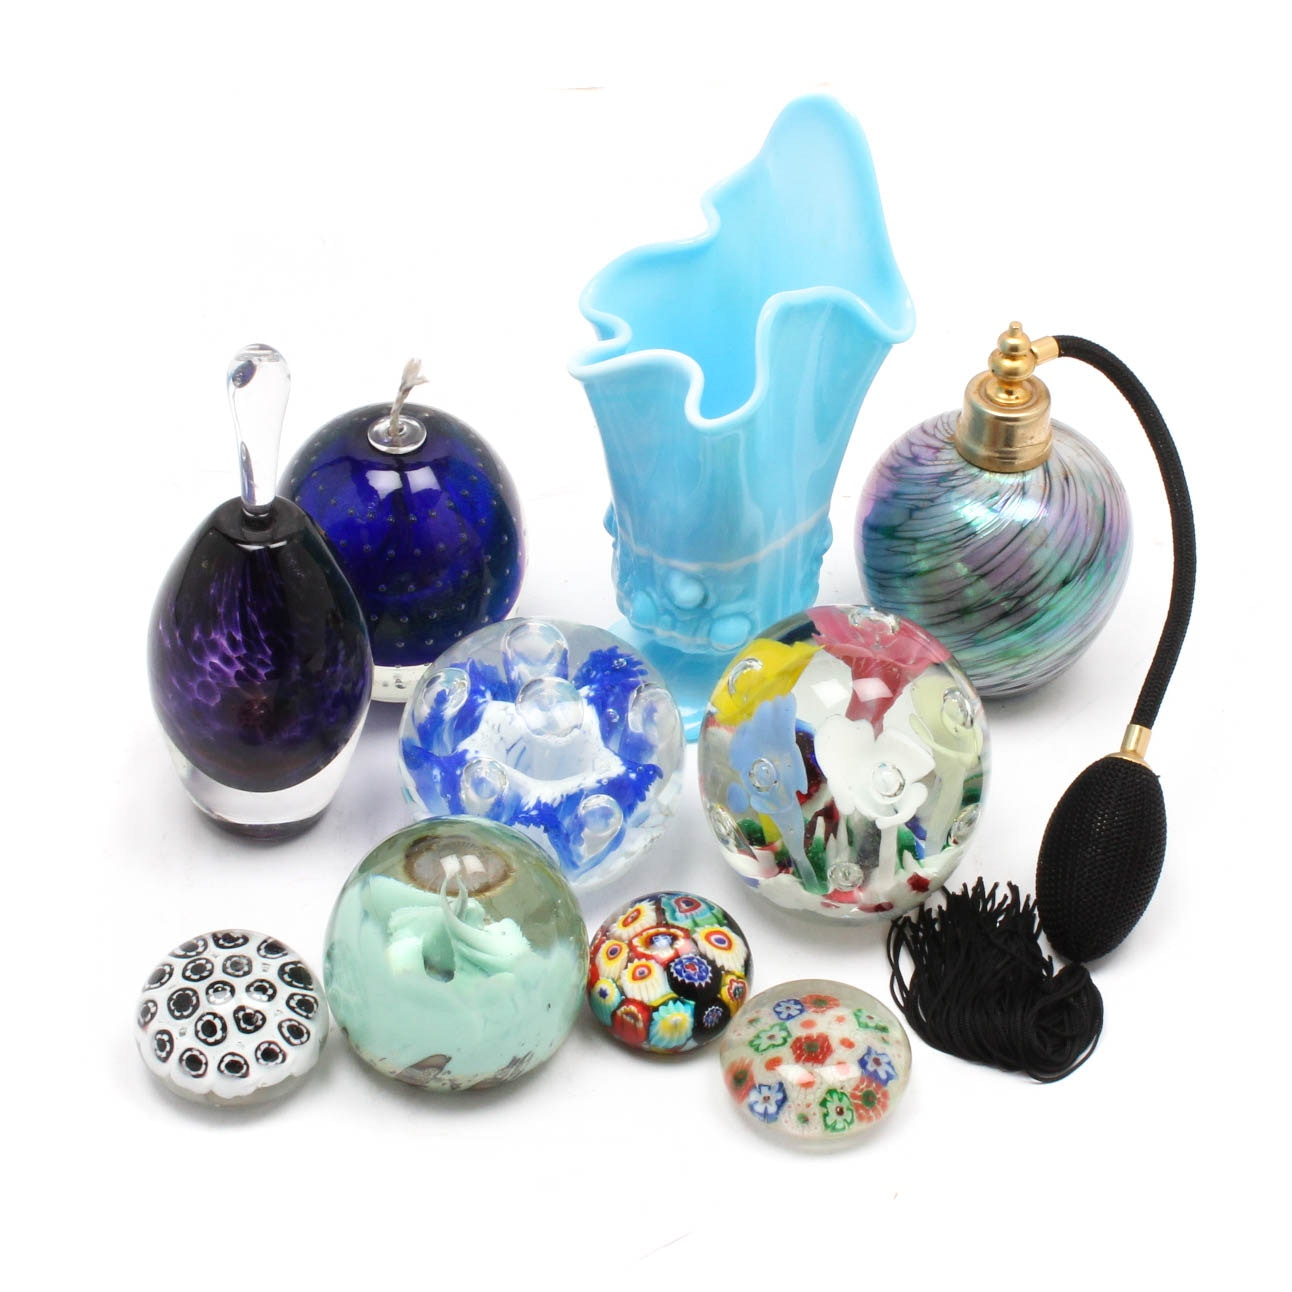 Art Glass Oil Lamp, Paperweights, Perfume Bottles and Vase